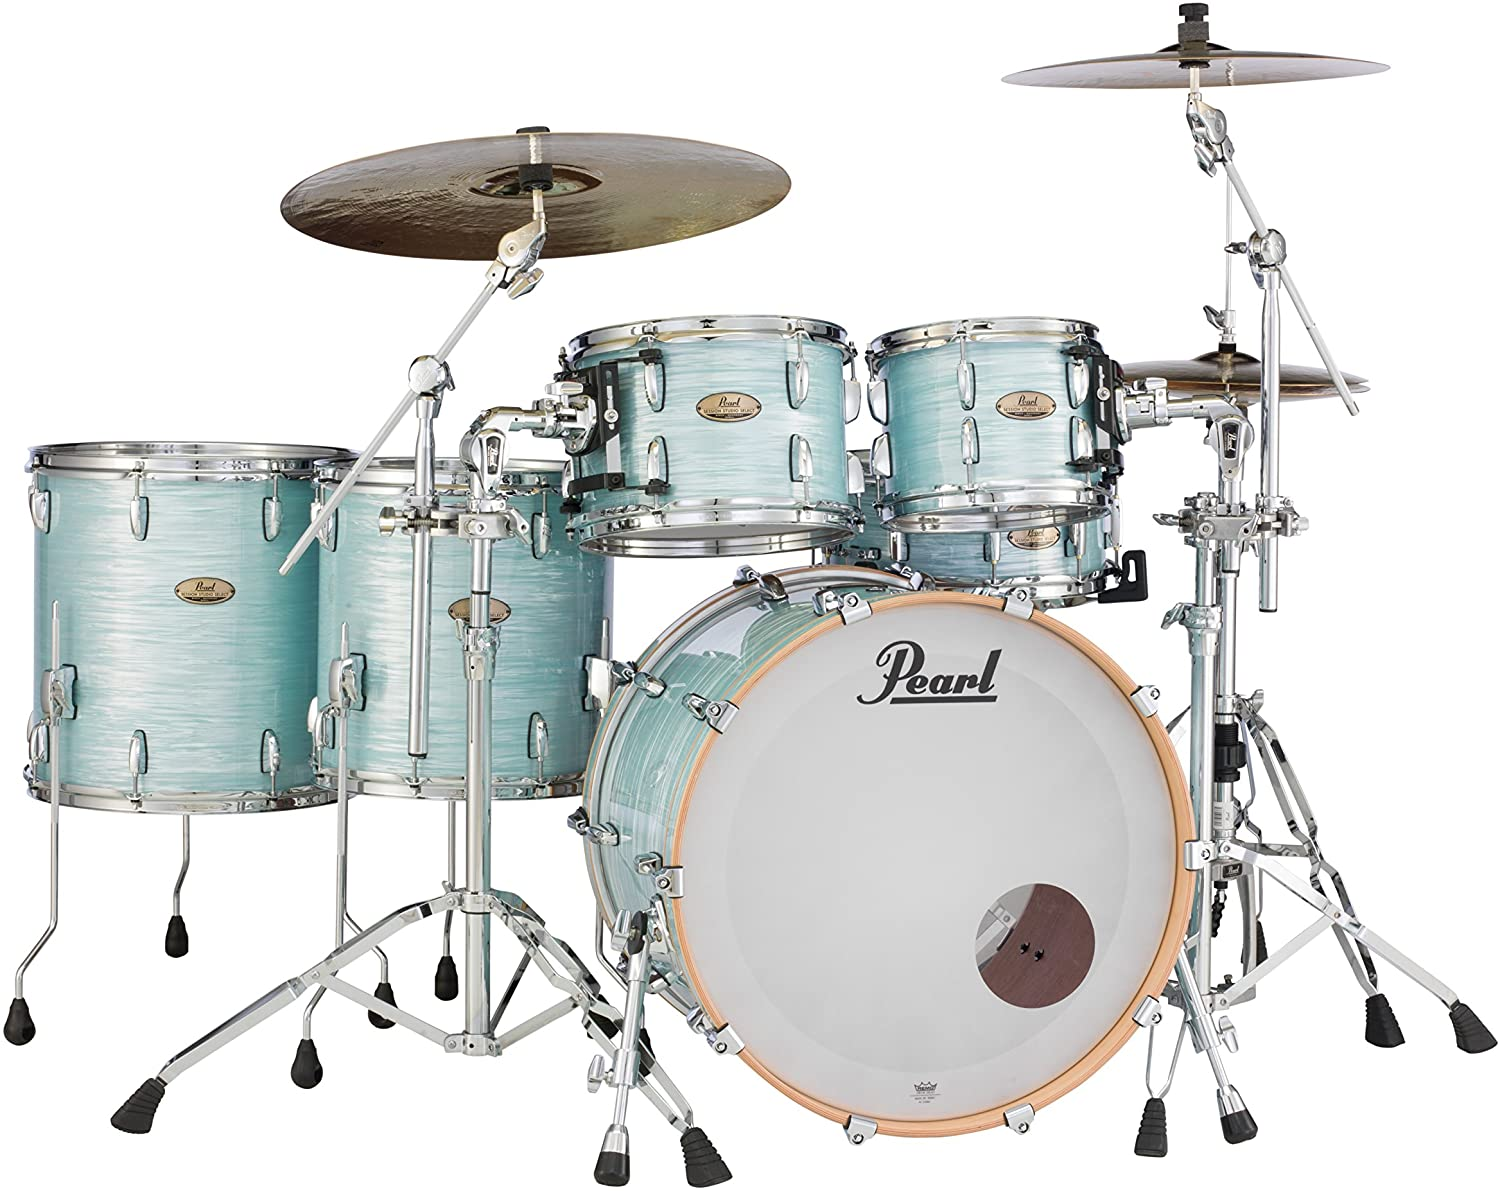 Pearl Session Studio Select Series 5-piece shell pack (hardware/cymbals not included), Ice Blue Oyster (STS925XSP/C414)